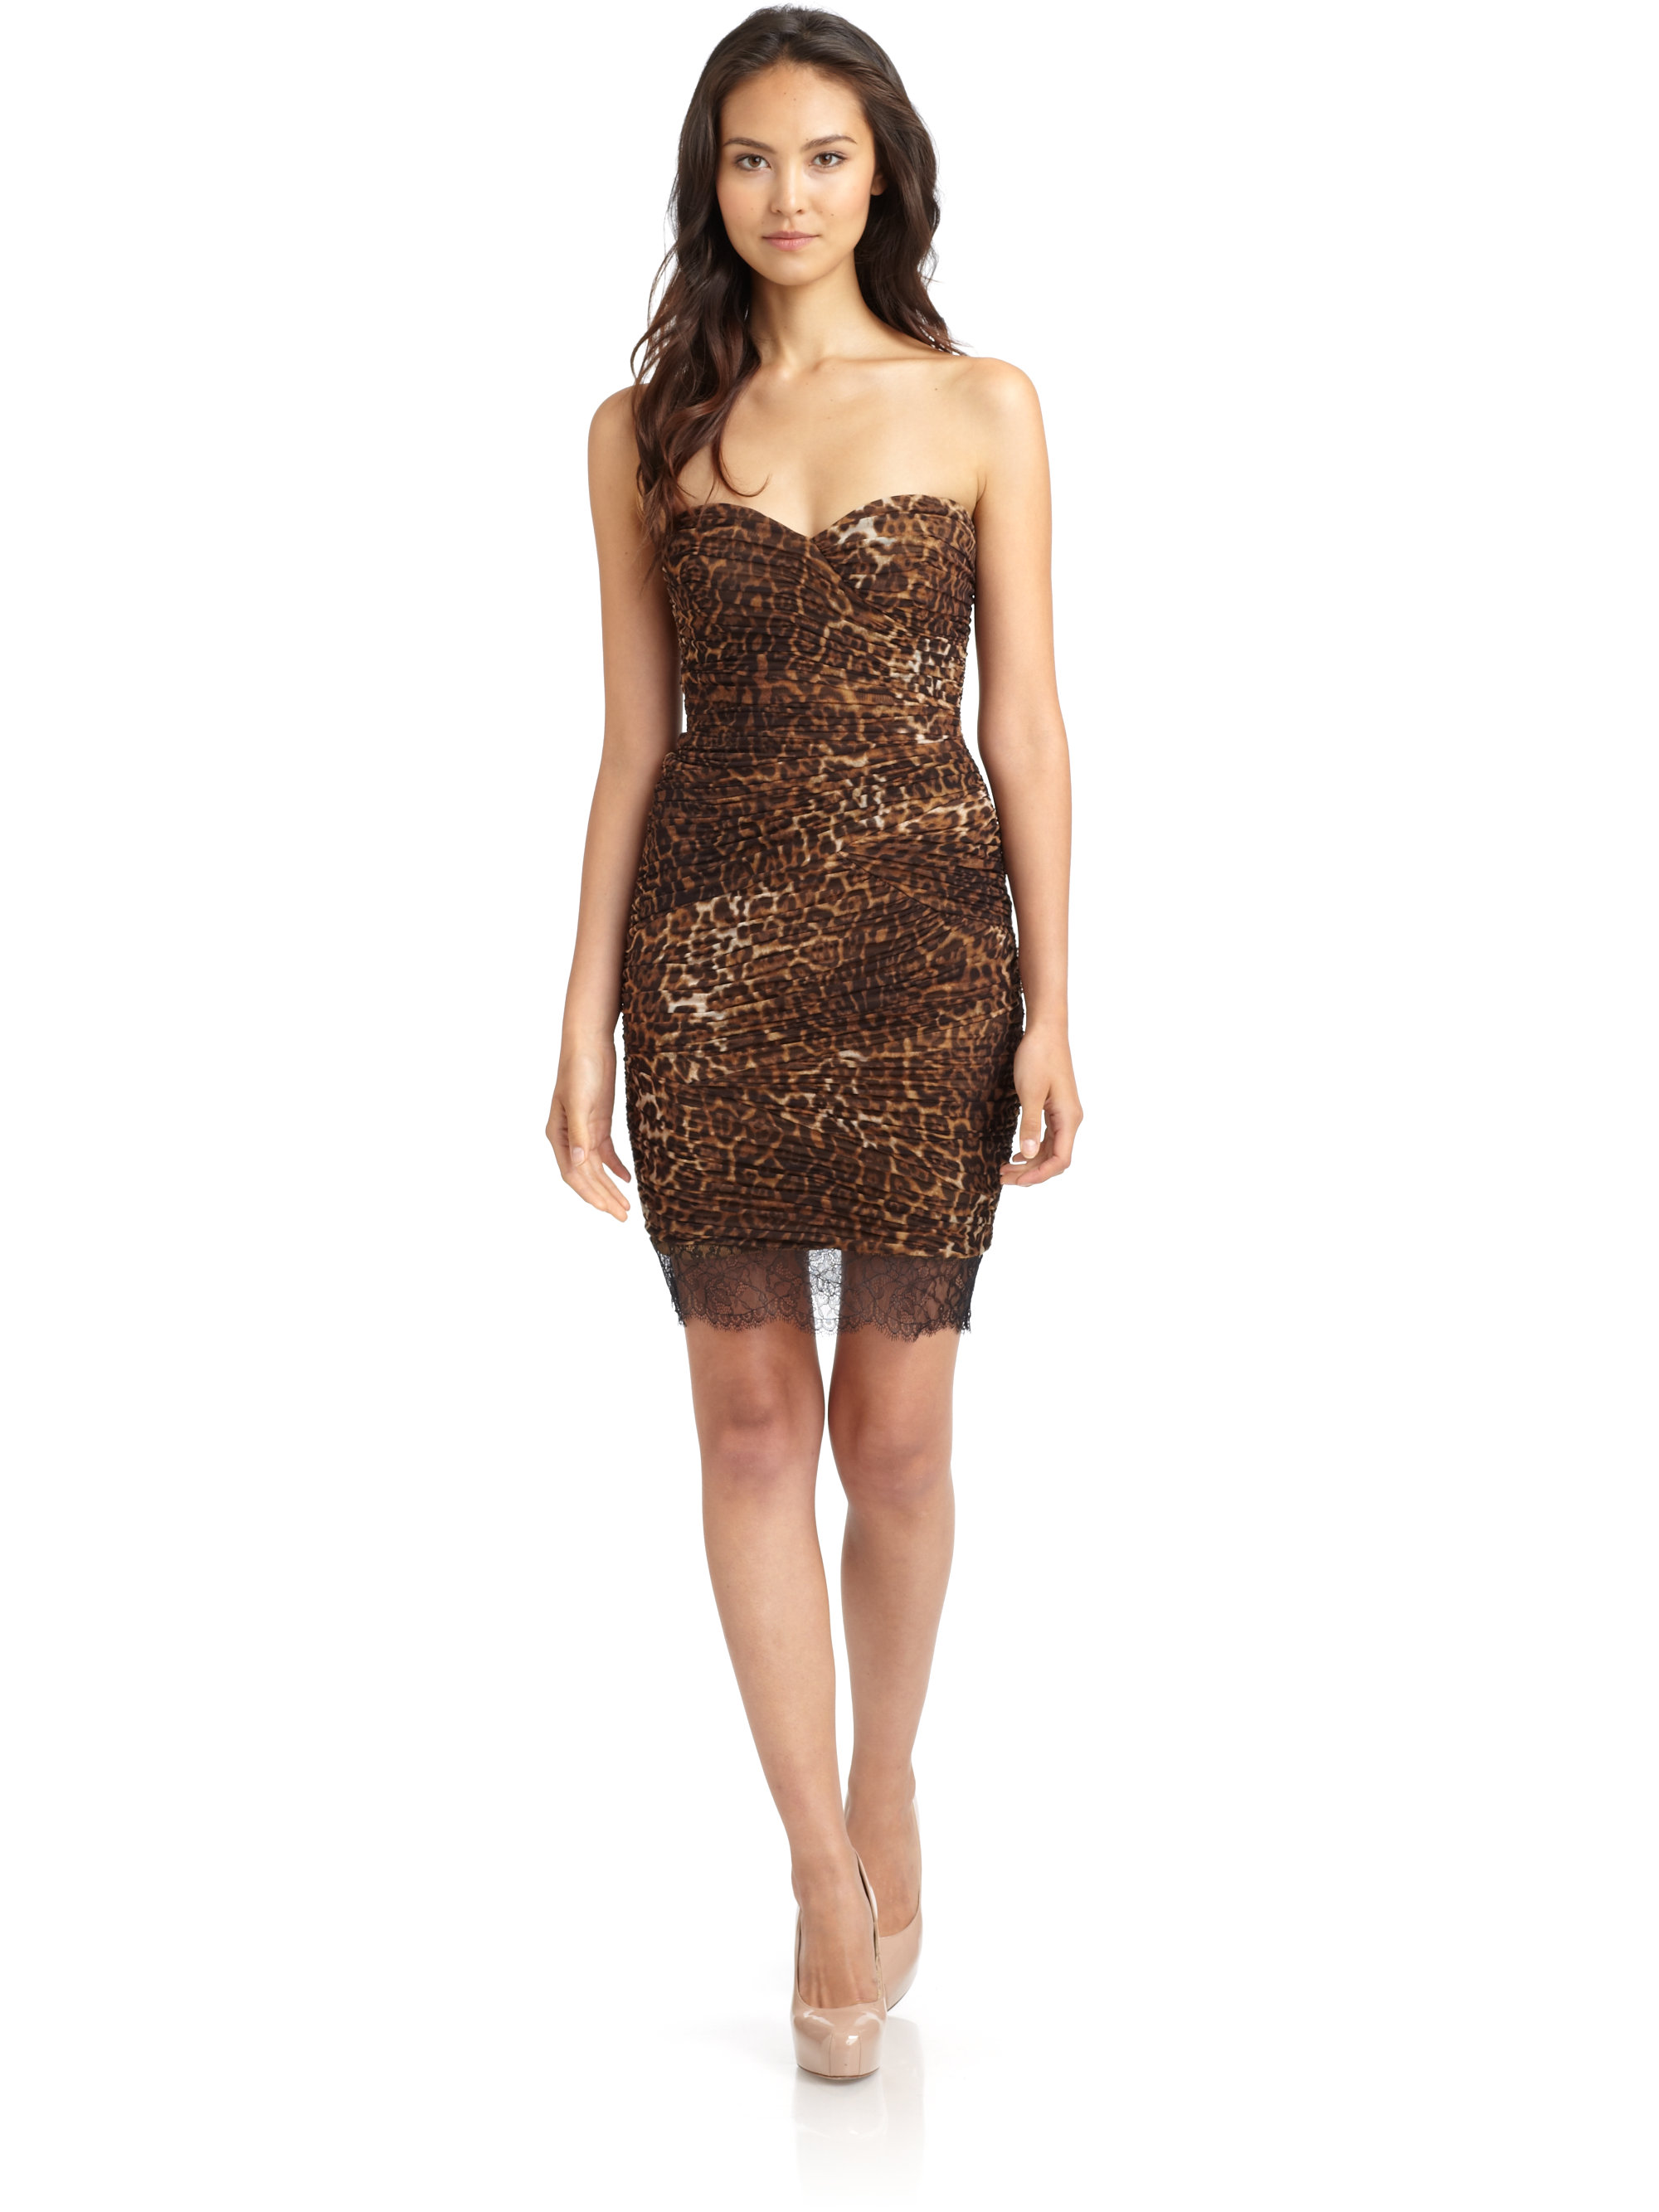 Lyst - Bcbgmaxazria Bovary Ruched Leopard Cocktail Dress